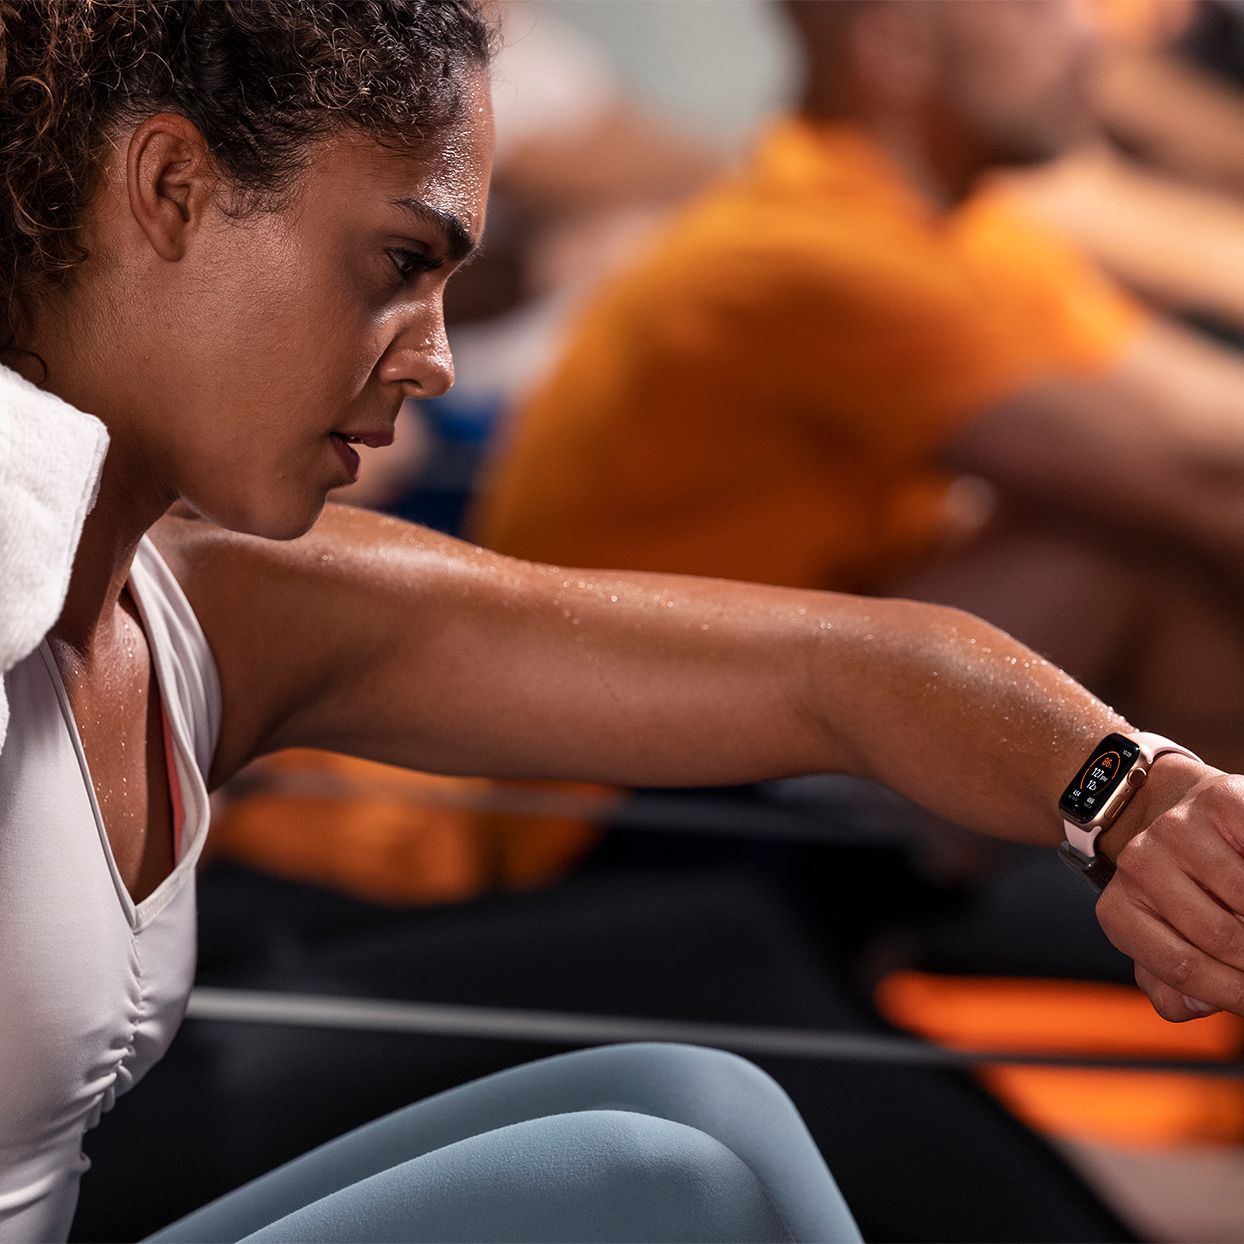 If You Re A Gym Rat With An Apple Watch You Can Now Earn Perks Just For Working Out Orange Theory Workout Apple Watch Fitness Fun Workouts